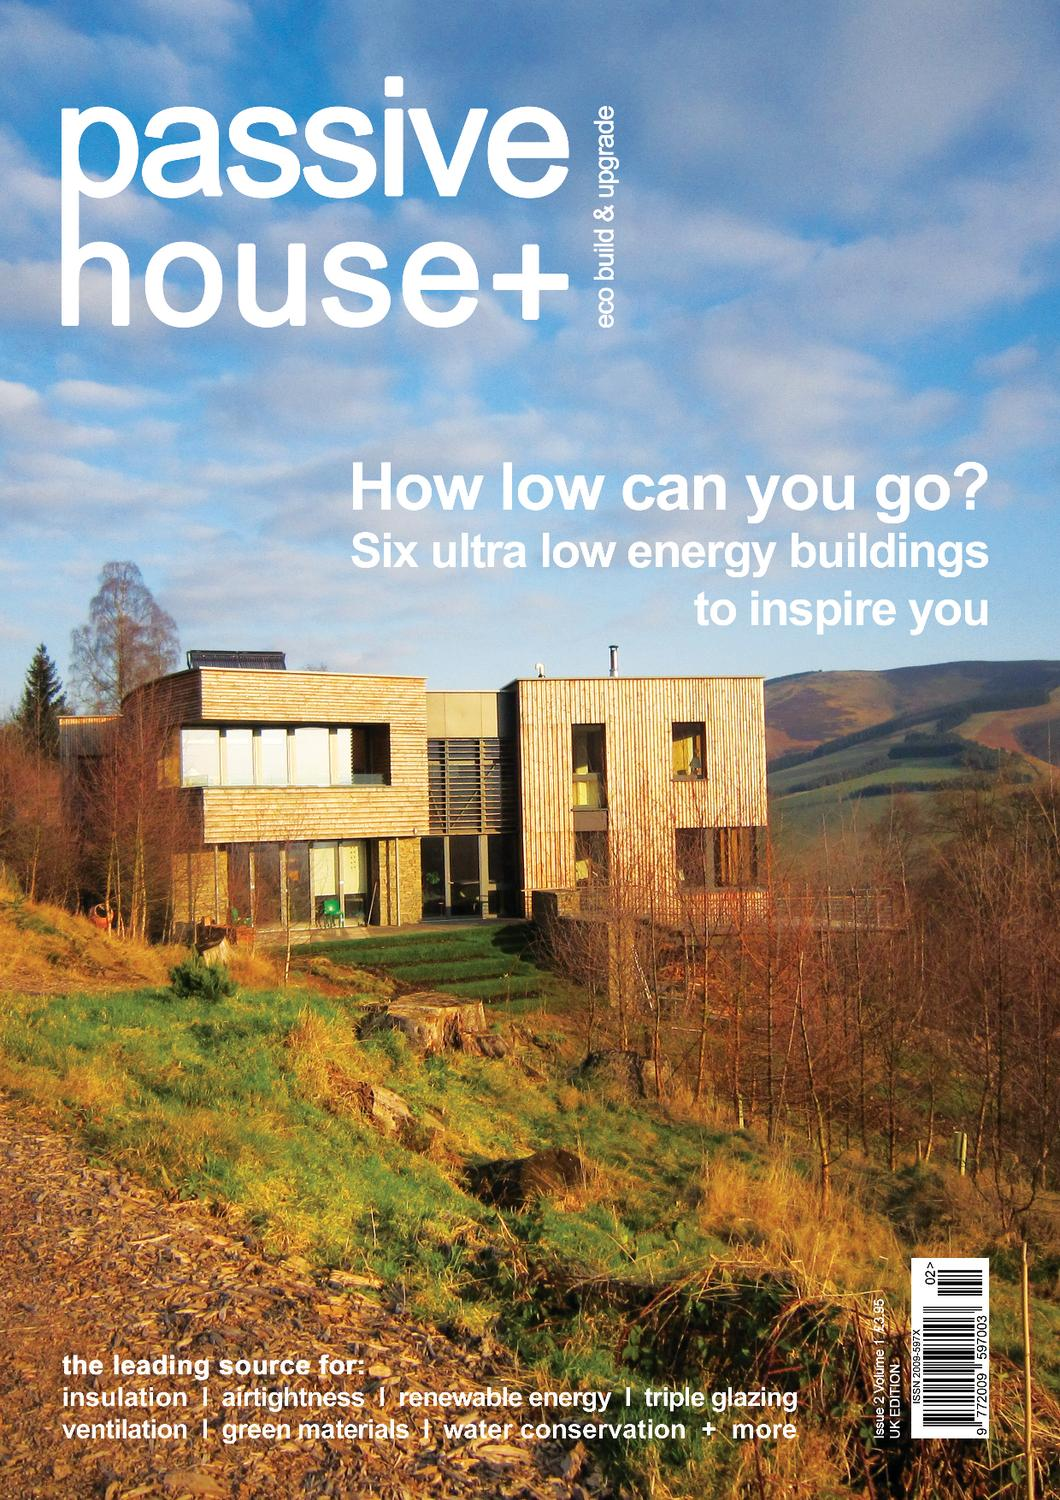 green building passive house or zero Green housing / modern home designs: modern home design brought to you by green modern kits modern house kits - passive solar houses - structural insulated panels ( sips ) - easily net zero energy / off grid.